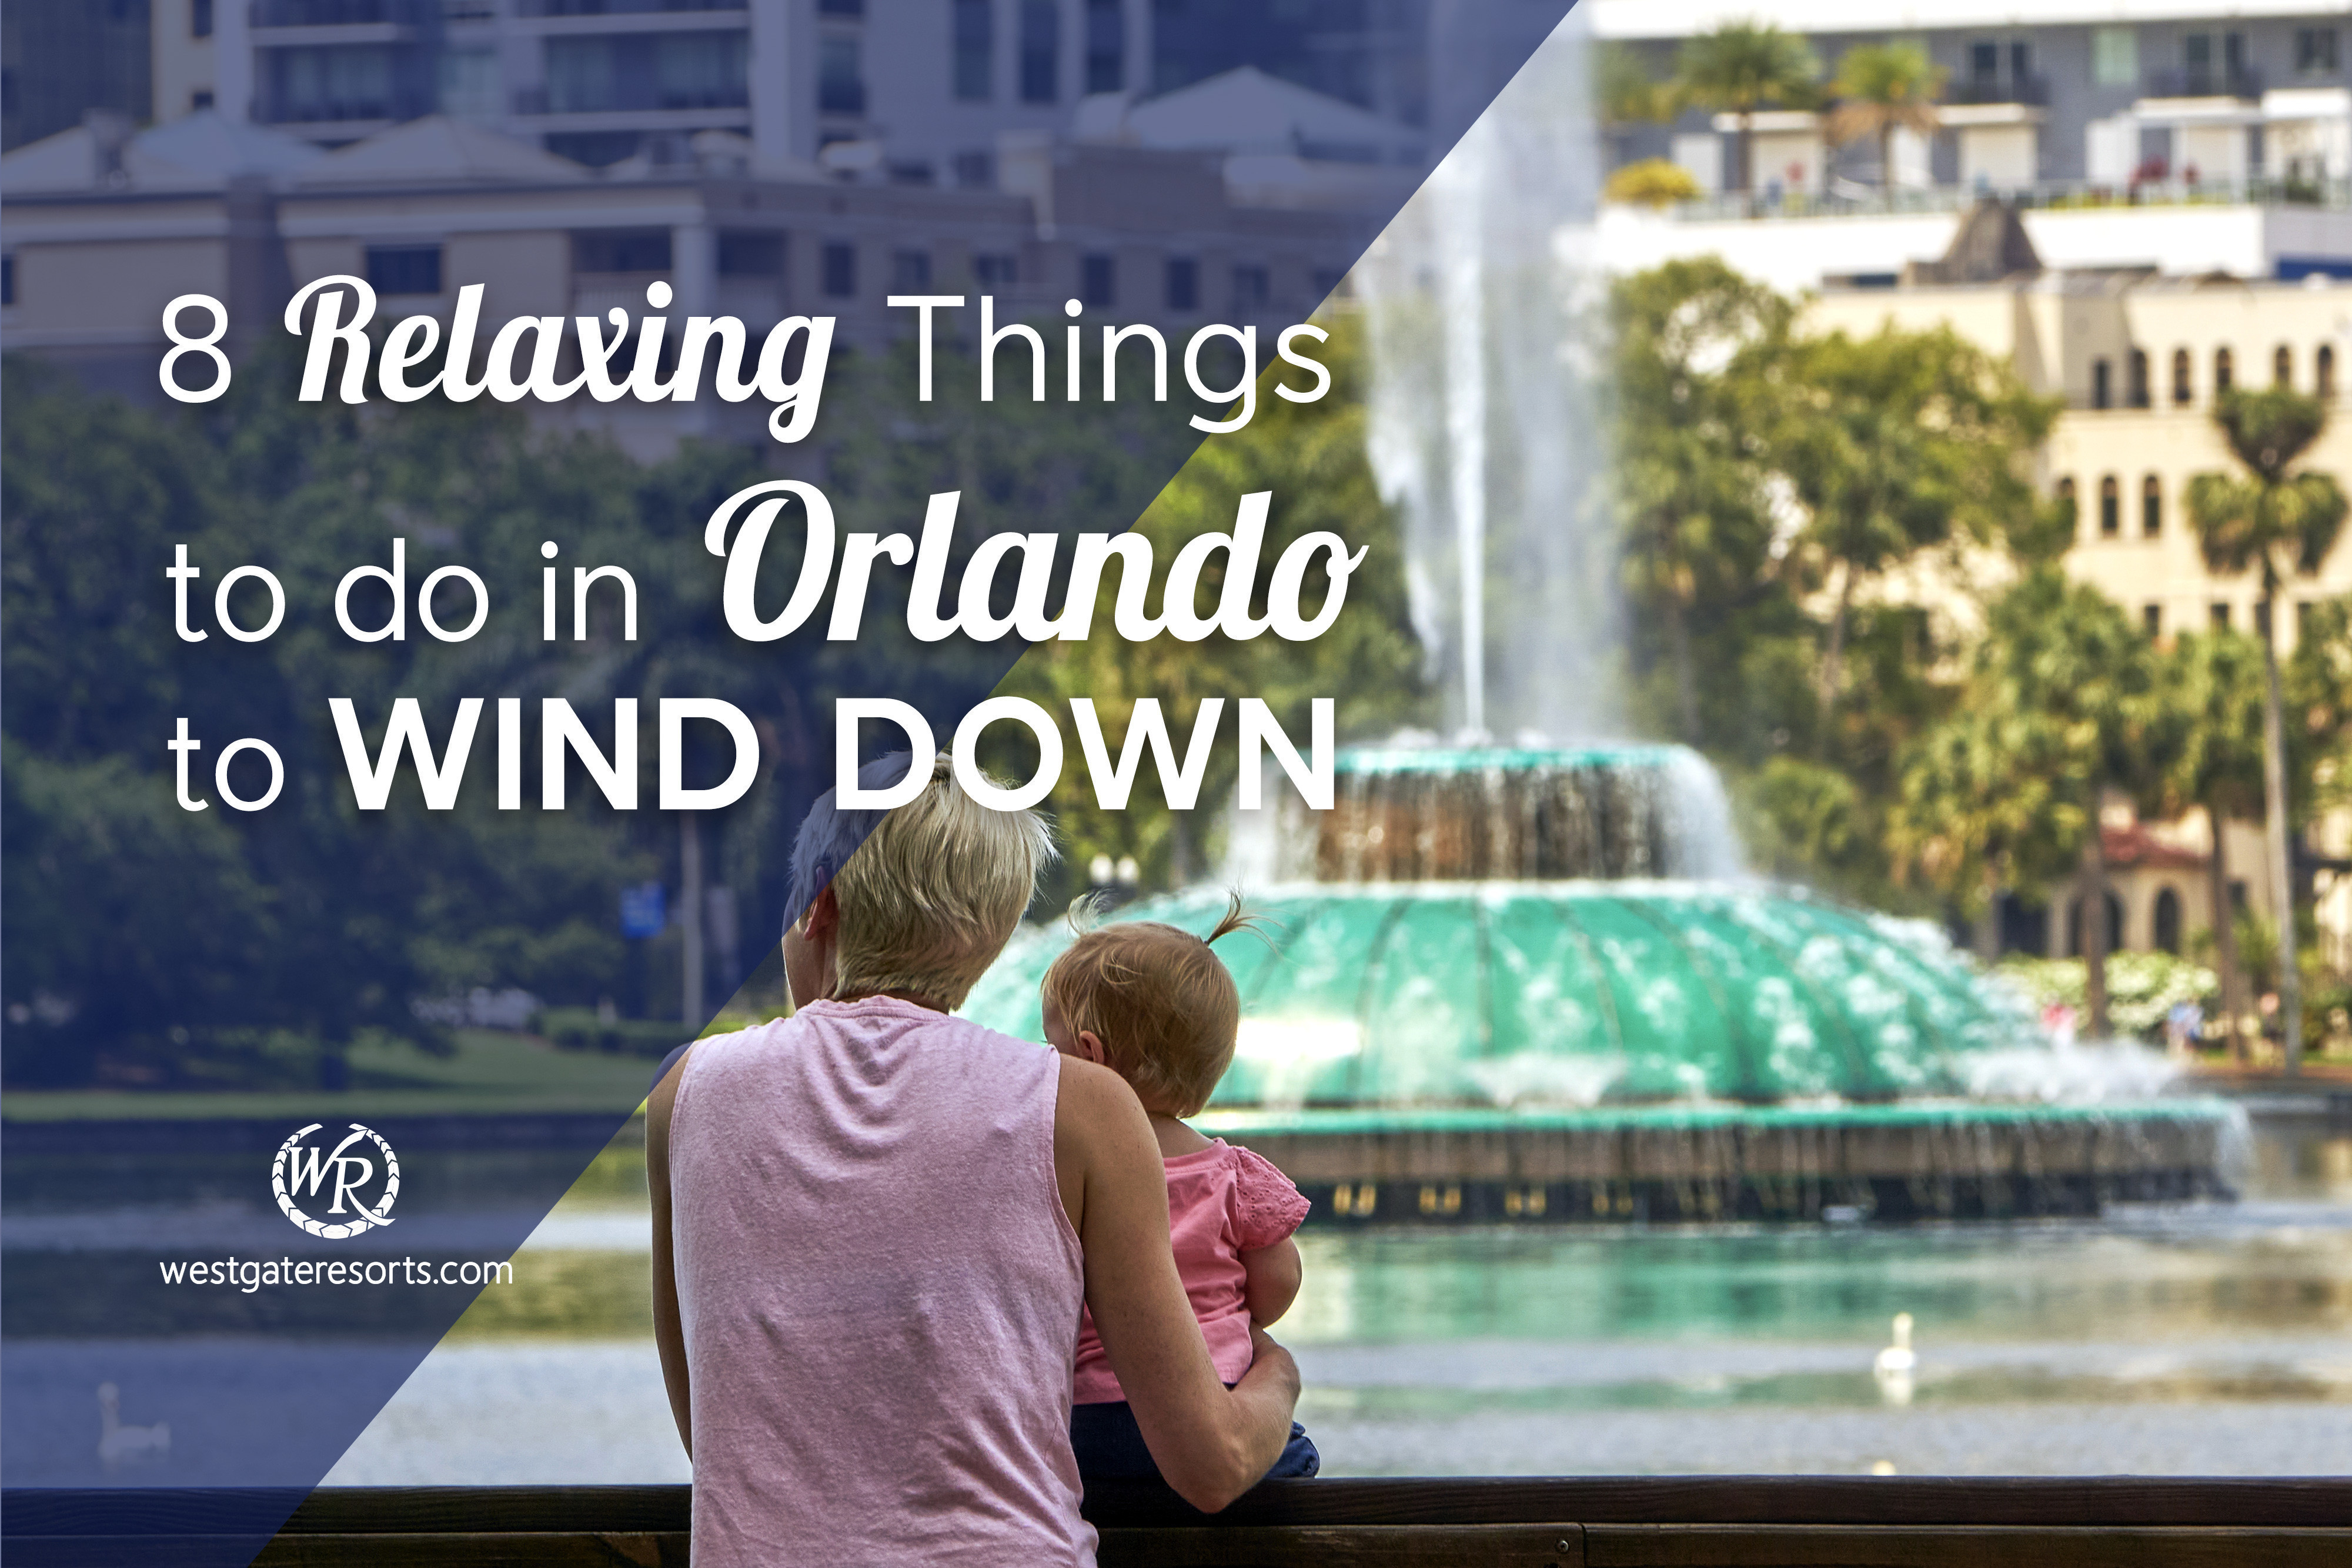 8 Relaxing Things to do in Orlando To Wind Down